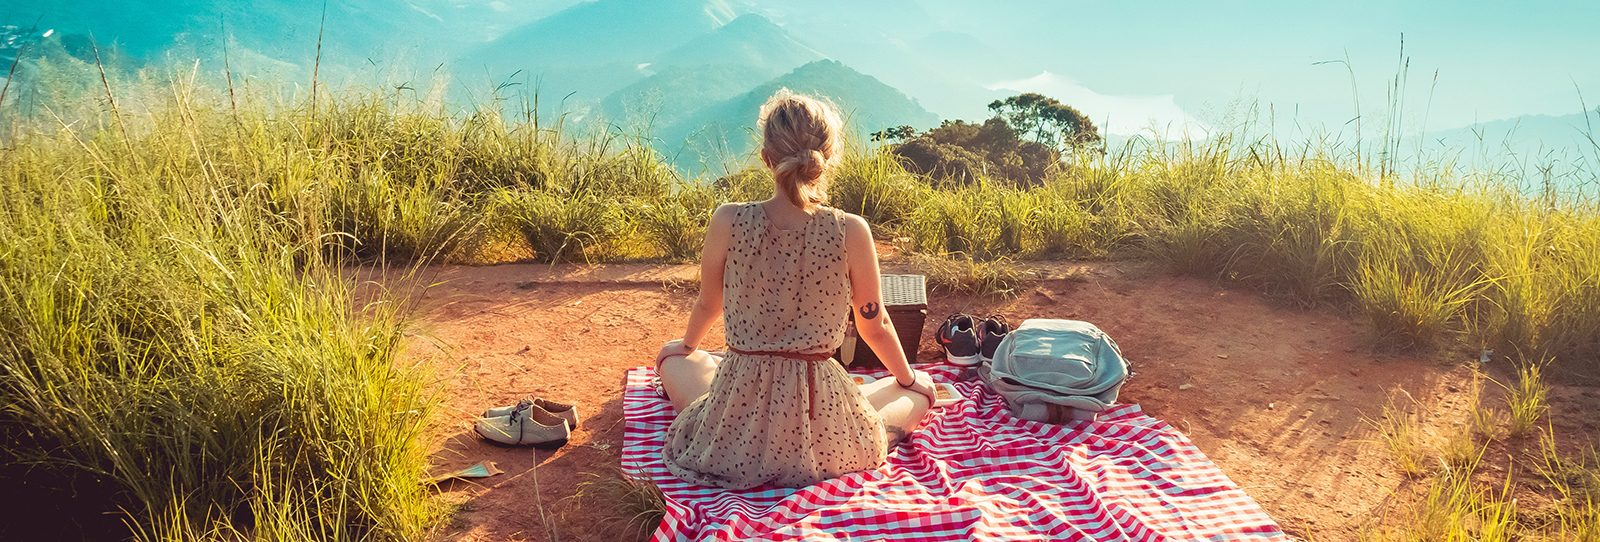 The view of a womans back as she sits on a picnic blanket with the view in front of her